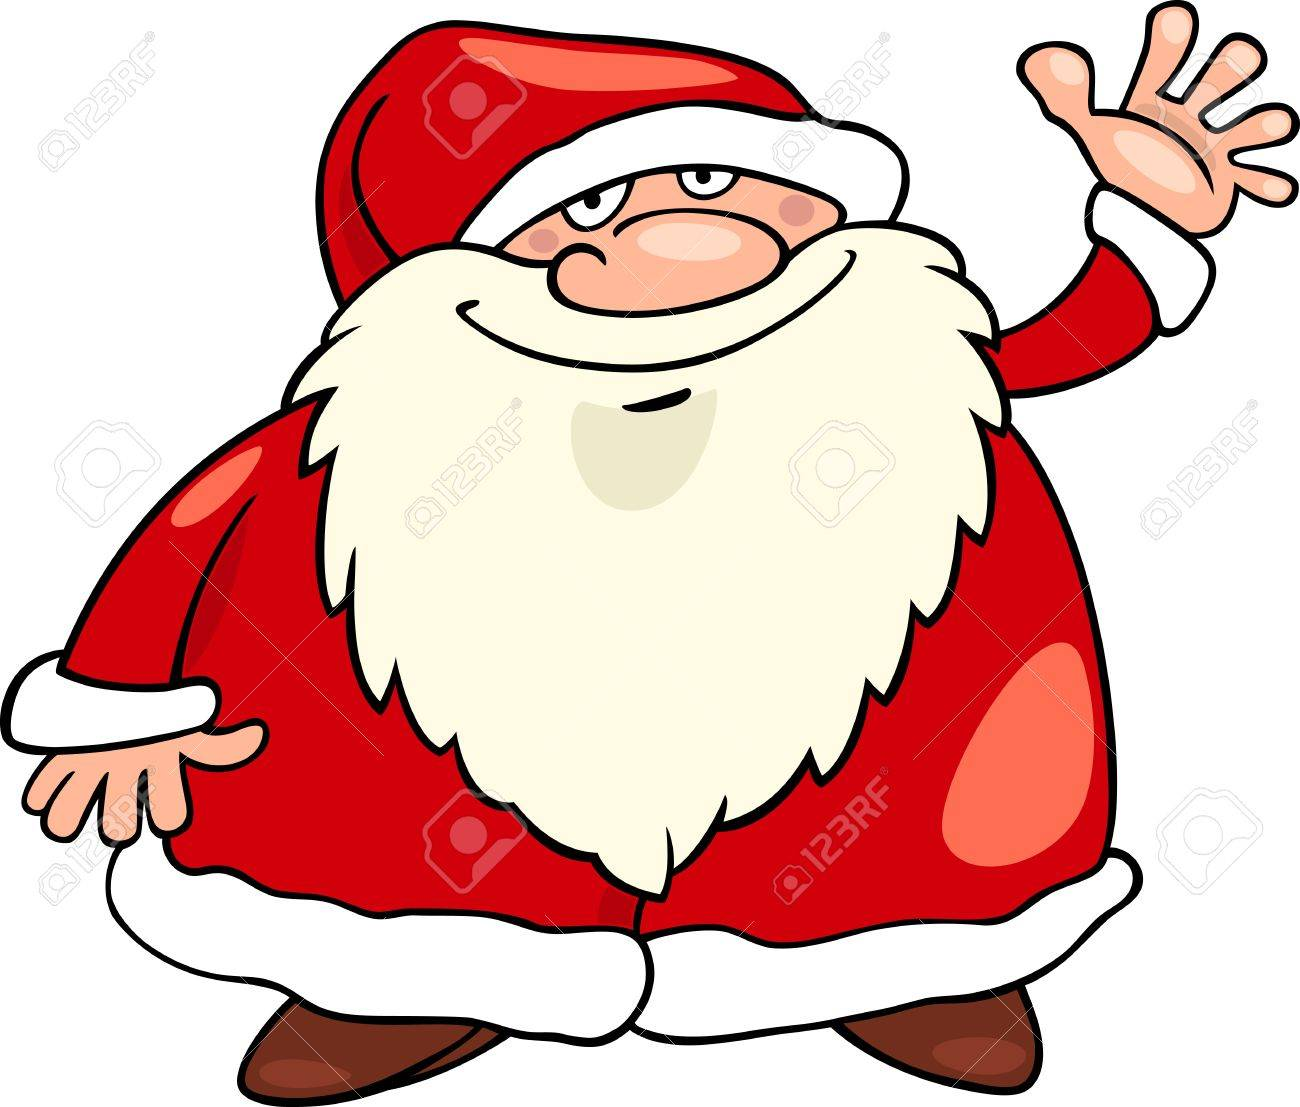 Father Christmas Images Free.Cartoon Illustration Of Funny Father Christmas Or Santa Claus